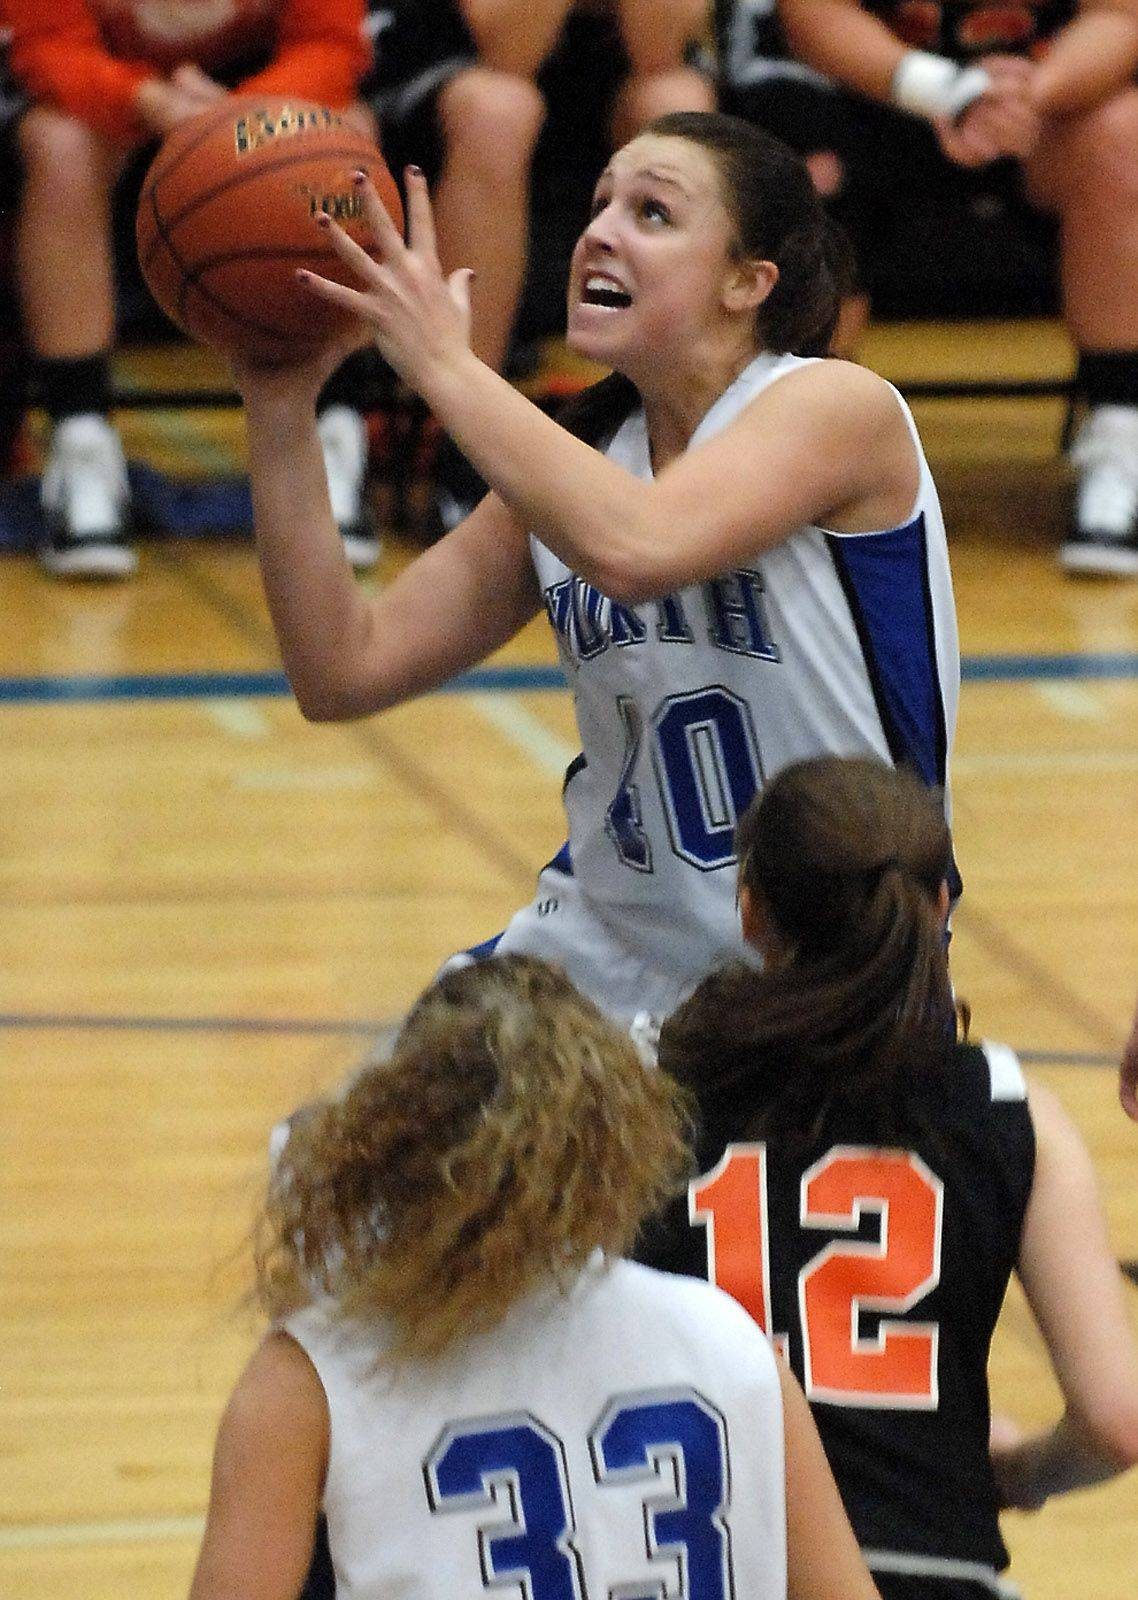 St. Charles North guard Tess Fischer drives.